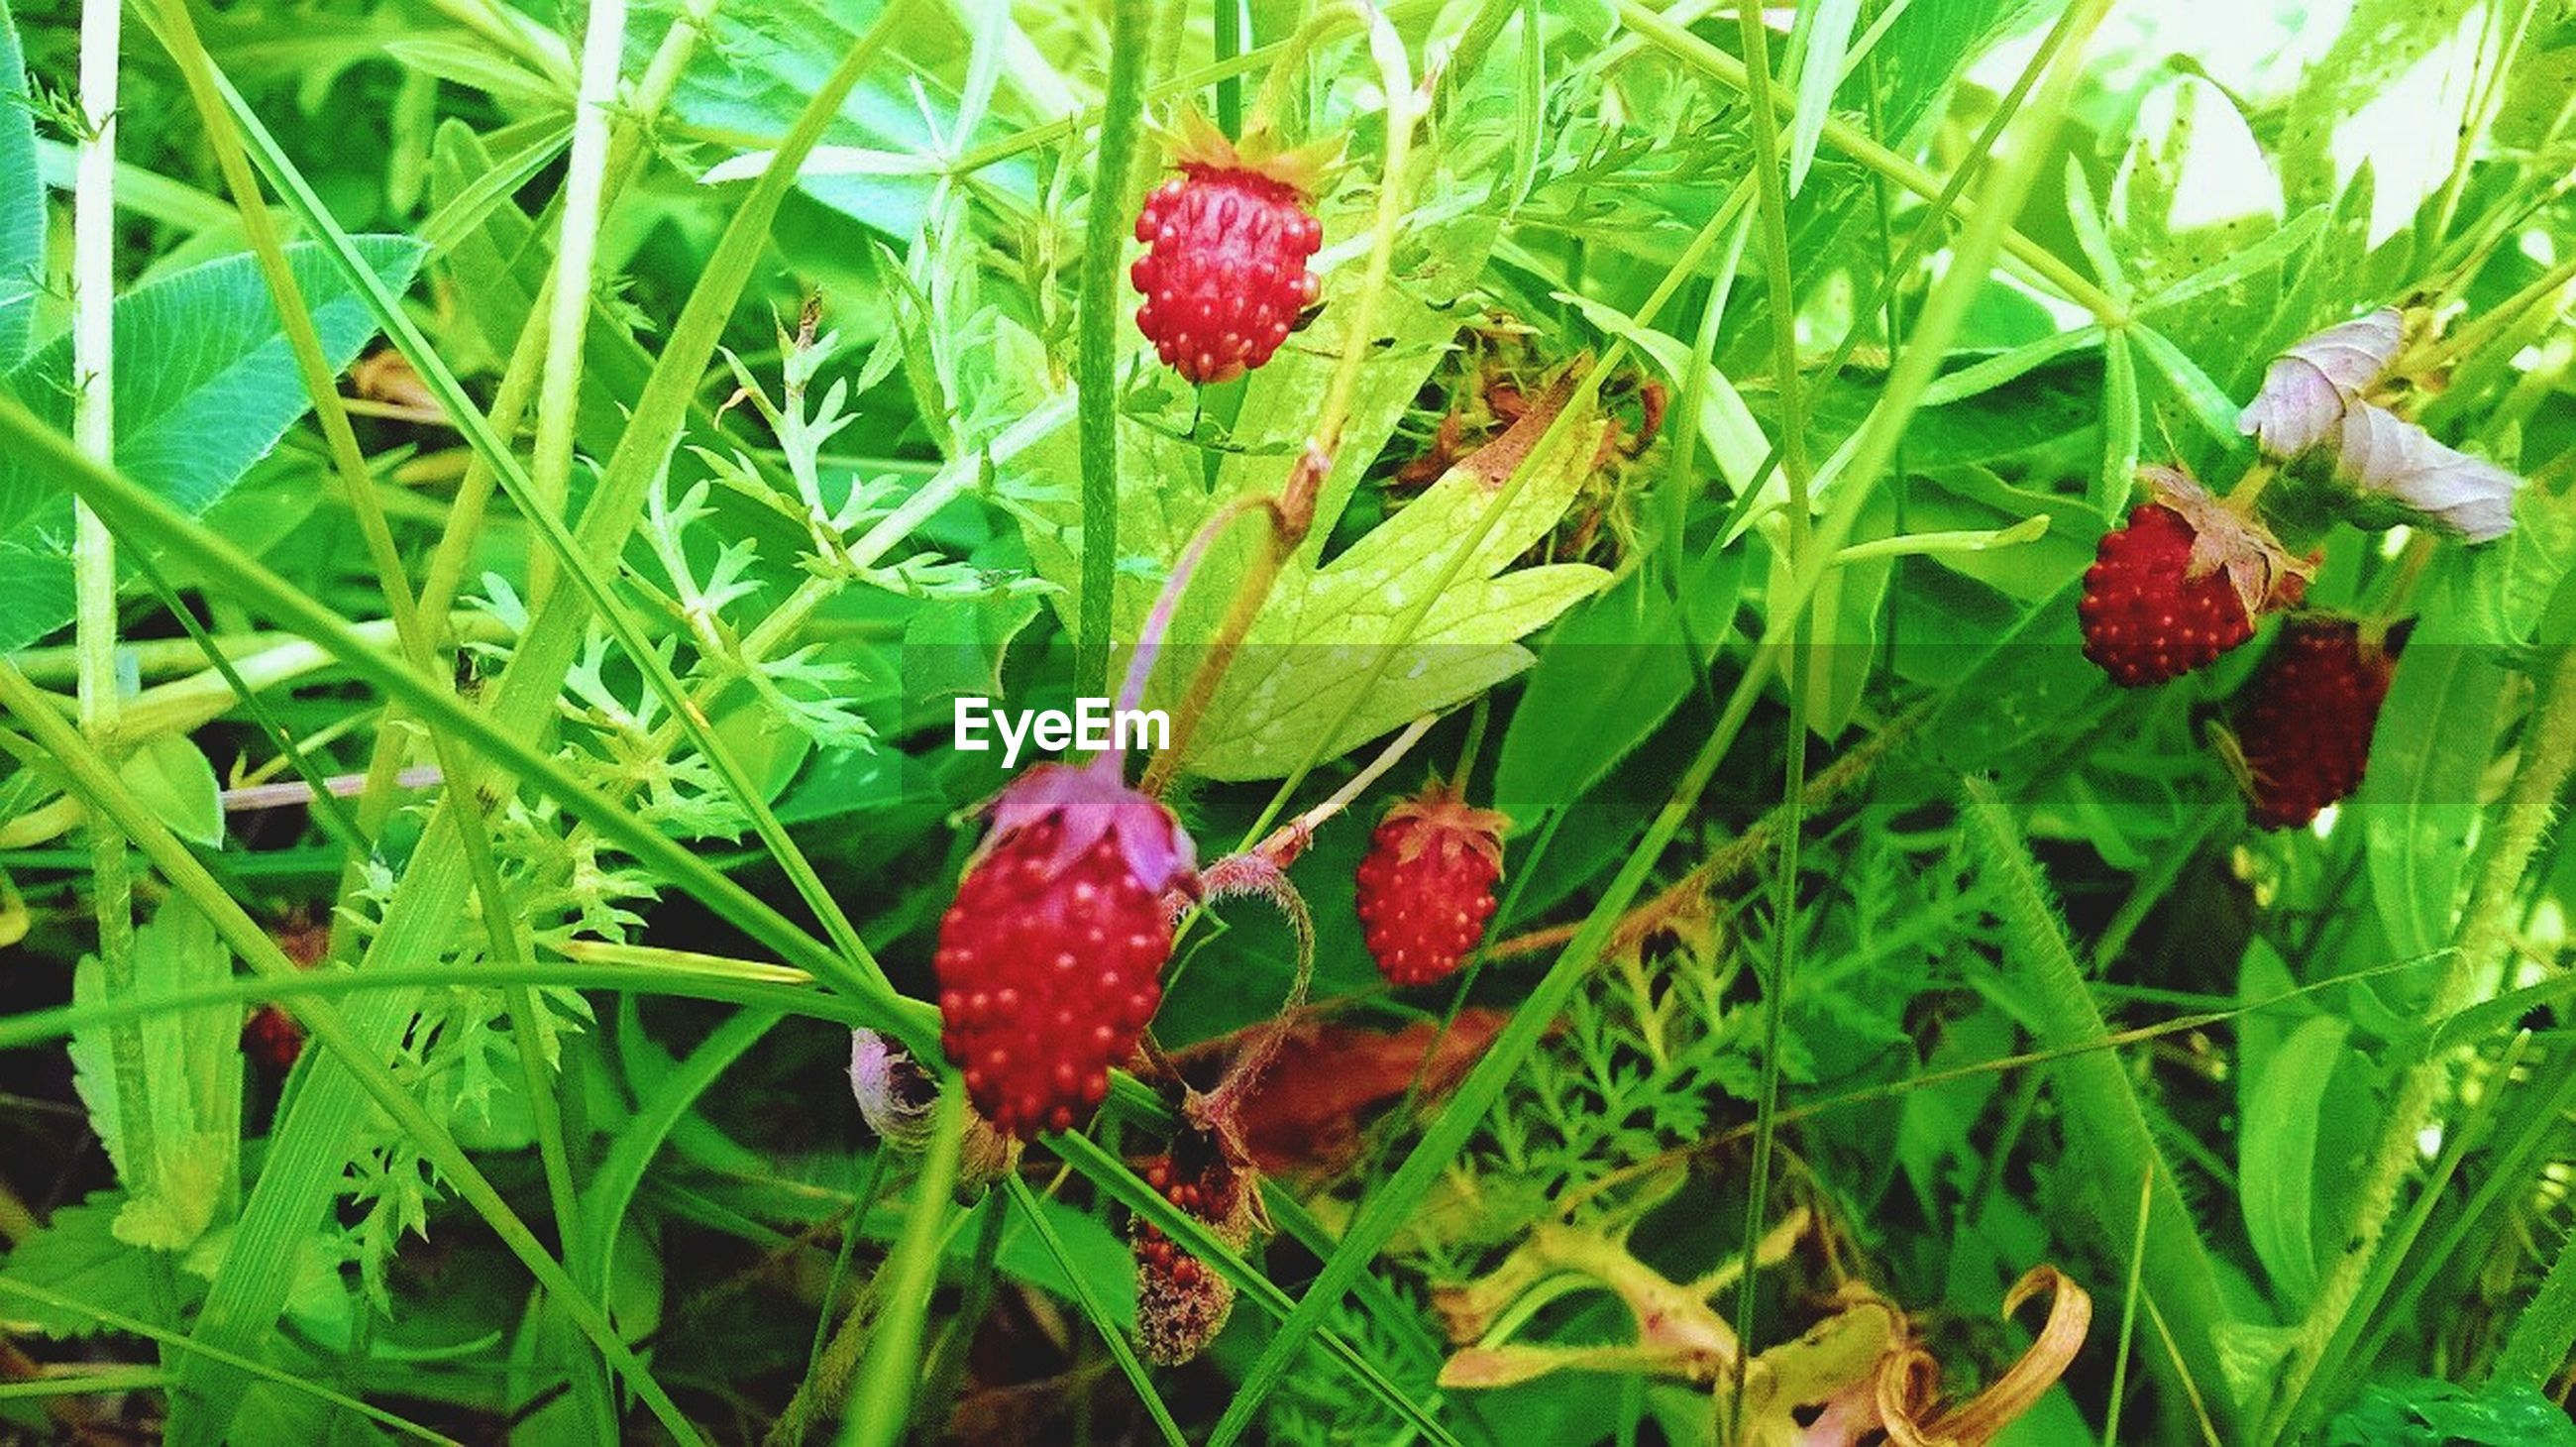 red, growth, freshness, plant, fruit, green color, leaf, nature, food and drink, beauty in nature, field, growing, close-up, flower, berry fruit, day, grass, outdoors, food, no people